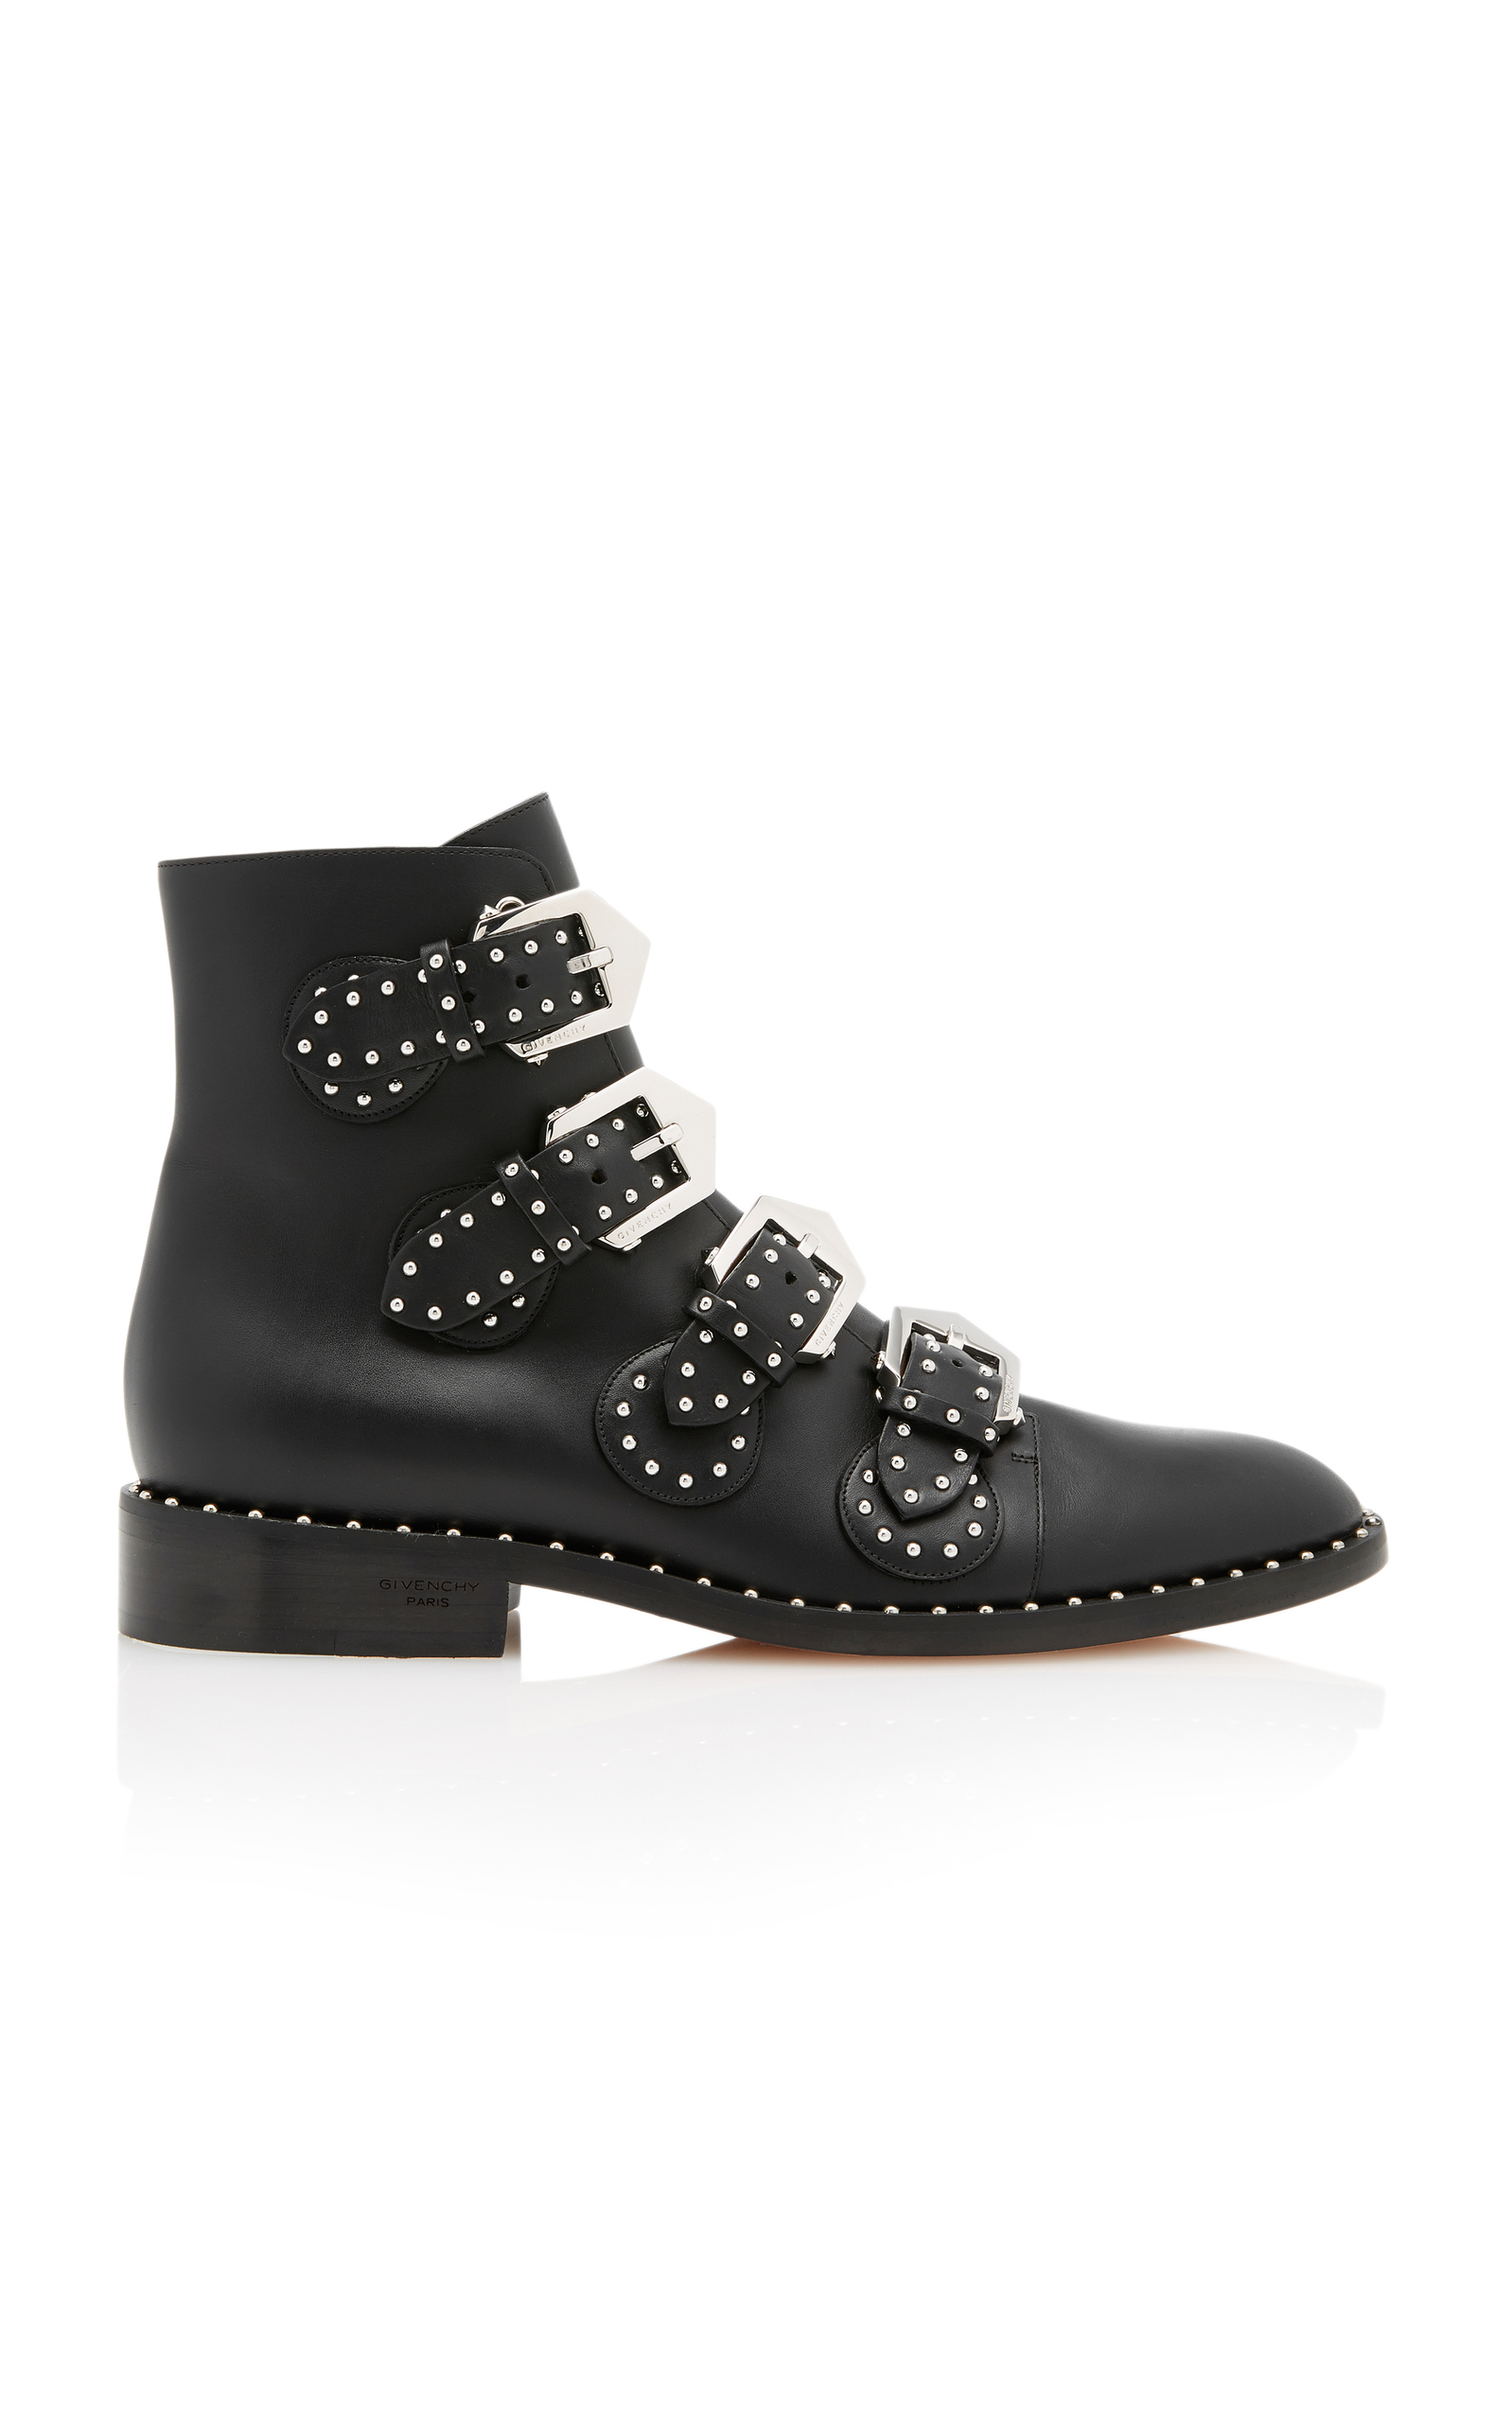 Givenchy Boots STUDDED LEATHER ANKLE BOOTS SIZE: 40.5